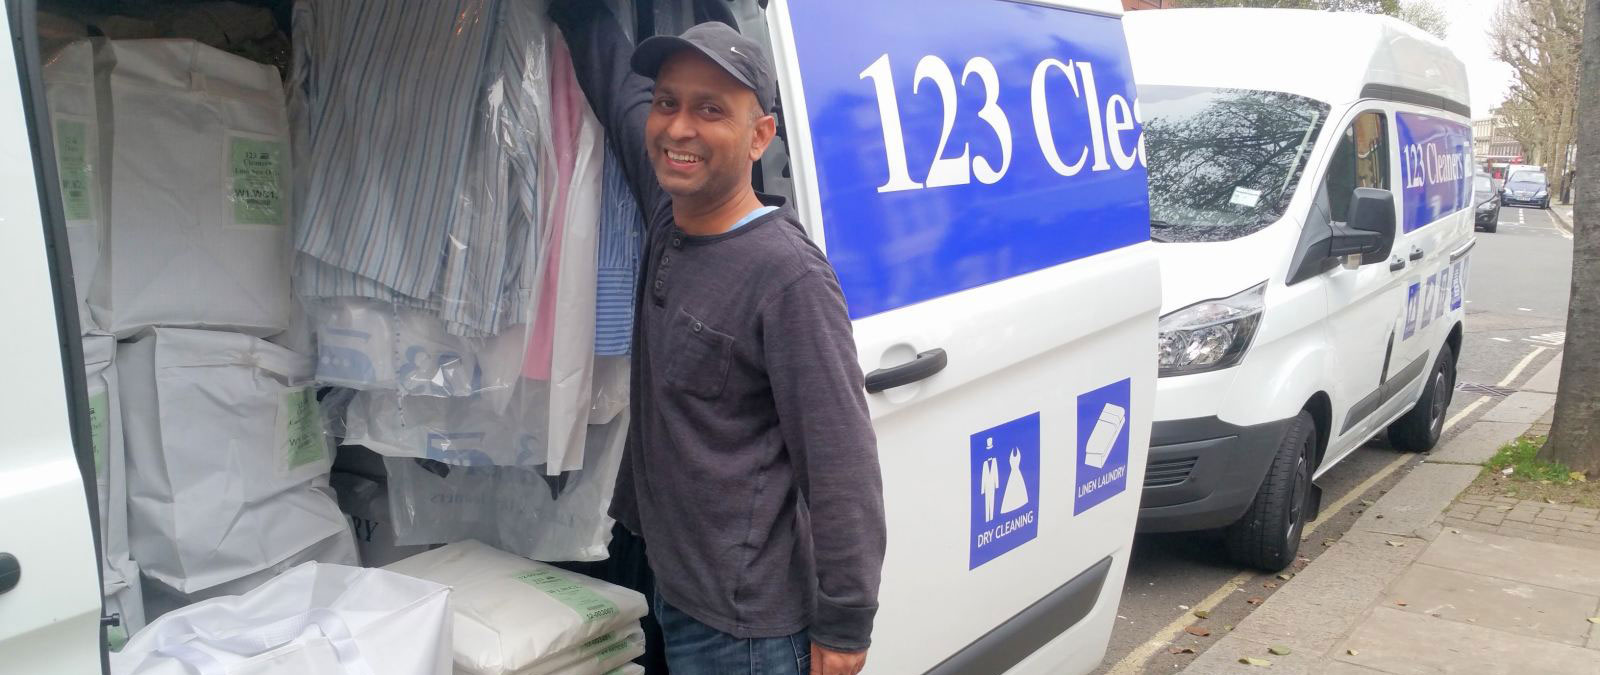 123 Cleaners Dry Cleaning Delivery Vans